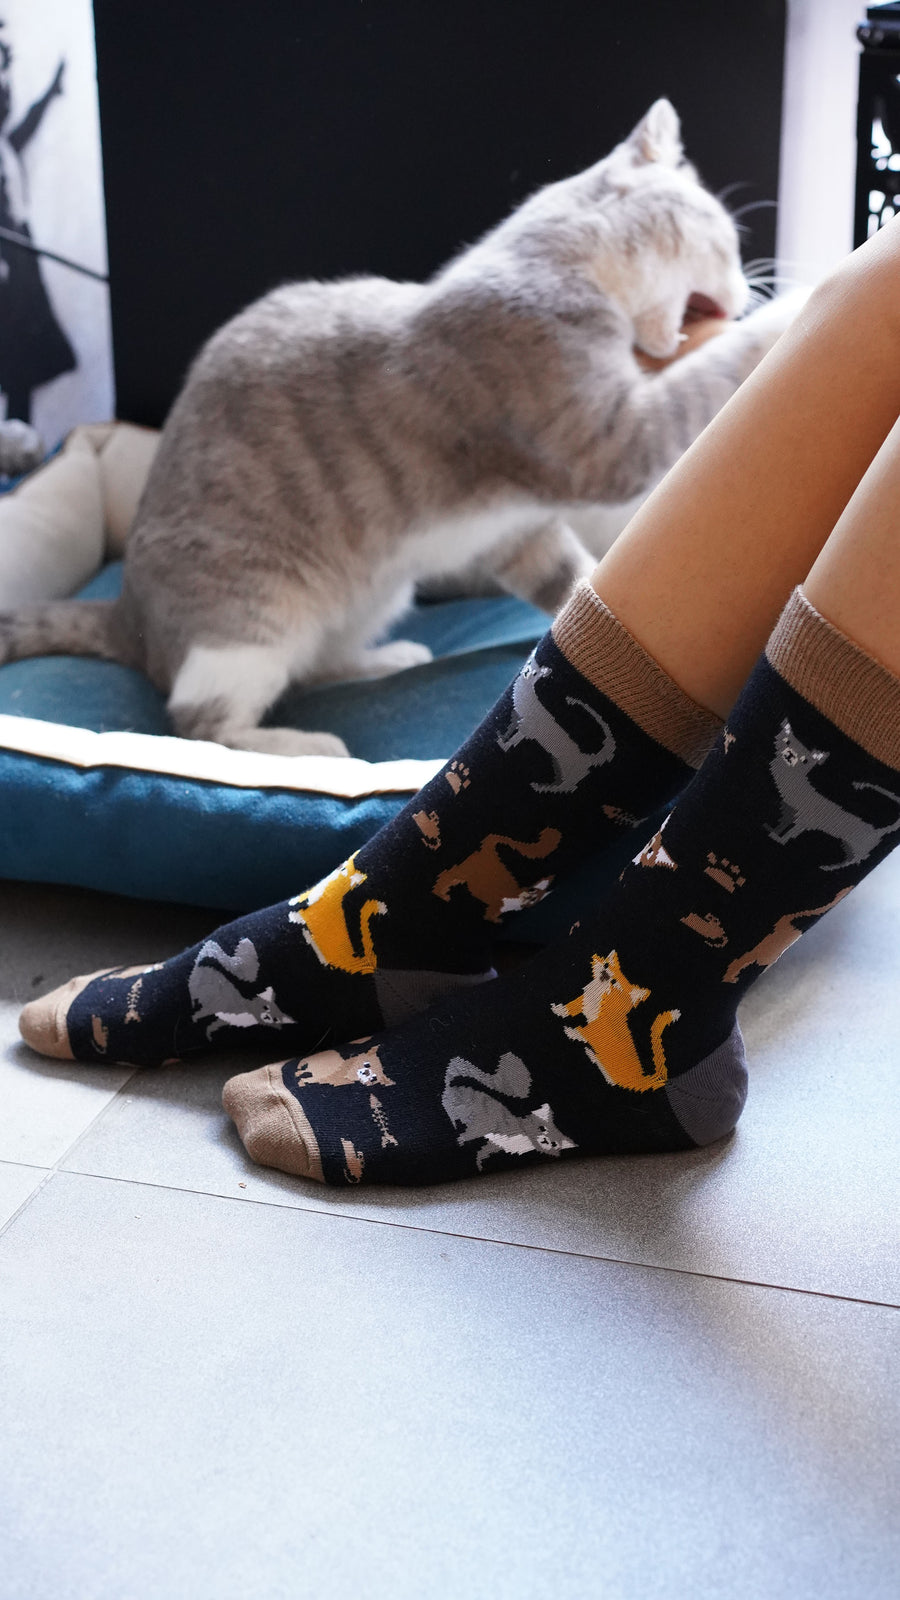 Women's Mrs. Kitty Socks